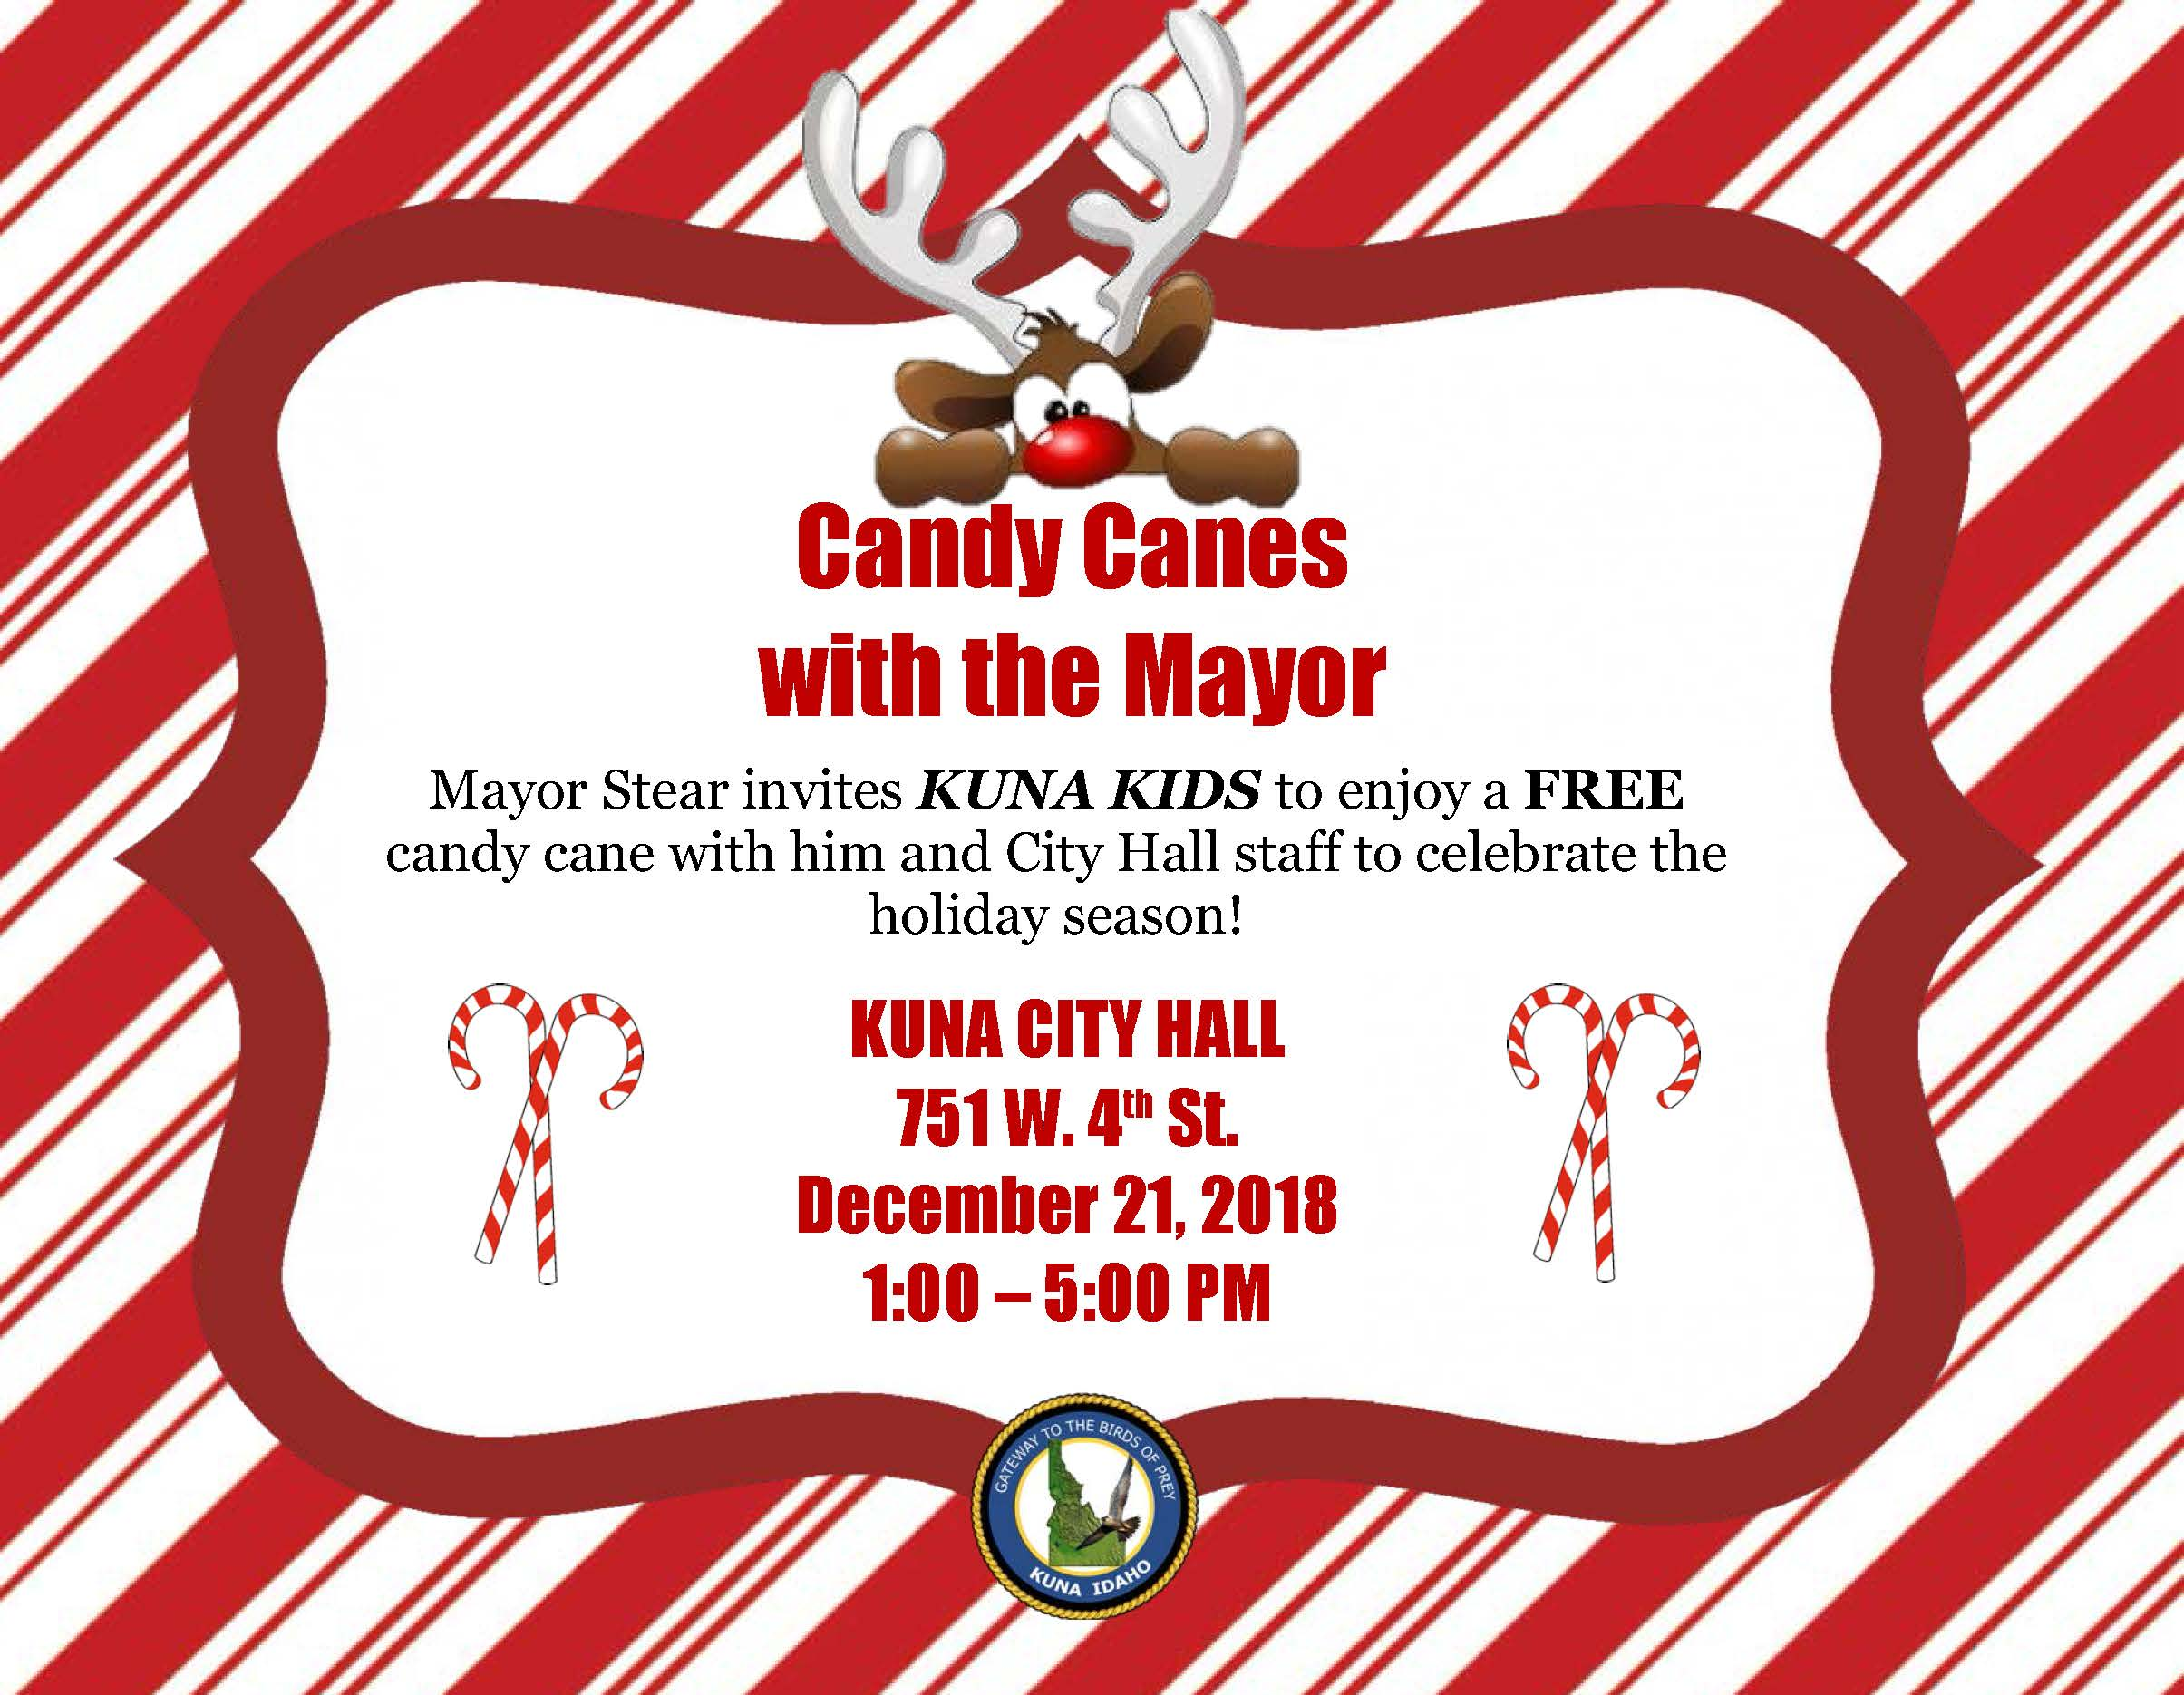 Candy Canes with the Mayor Flyer.jpg